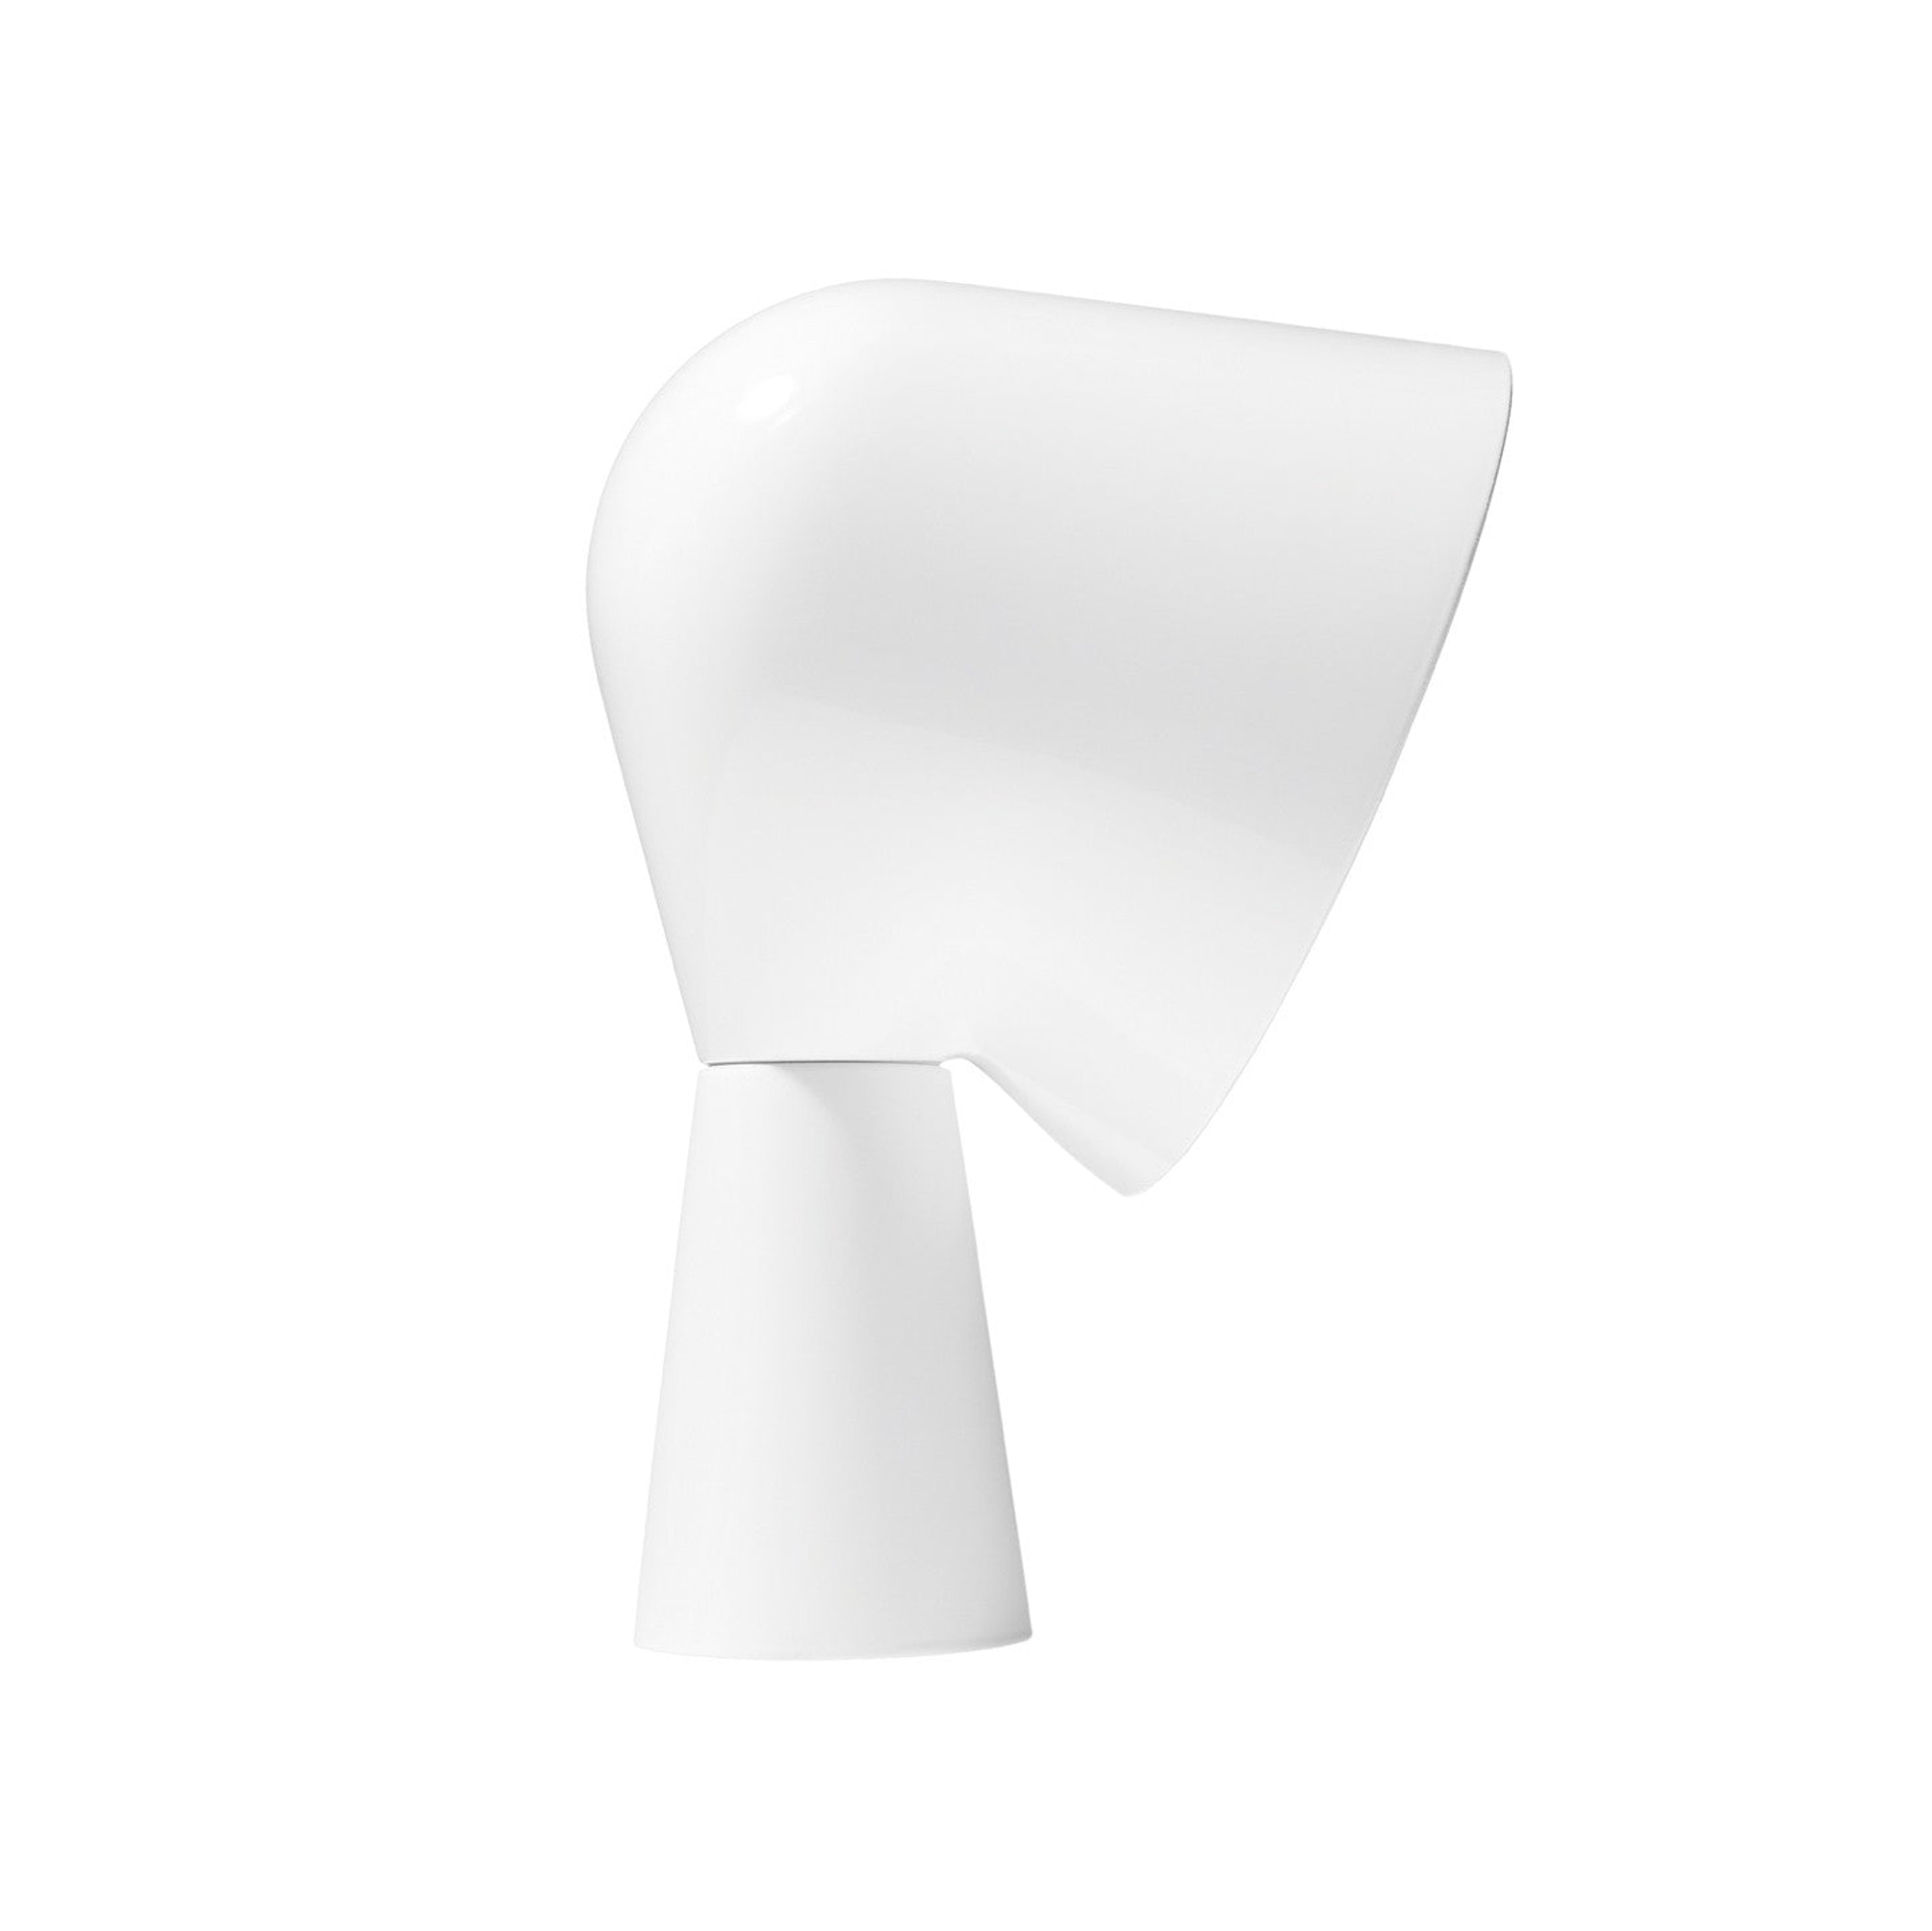 Binic Table Lamp by Foscarini